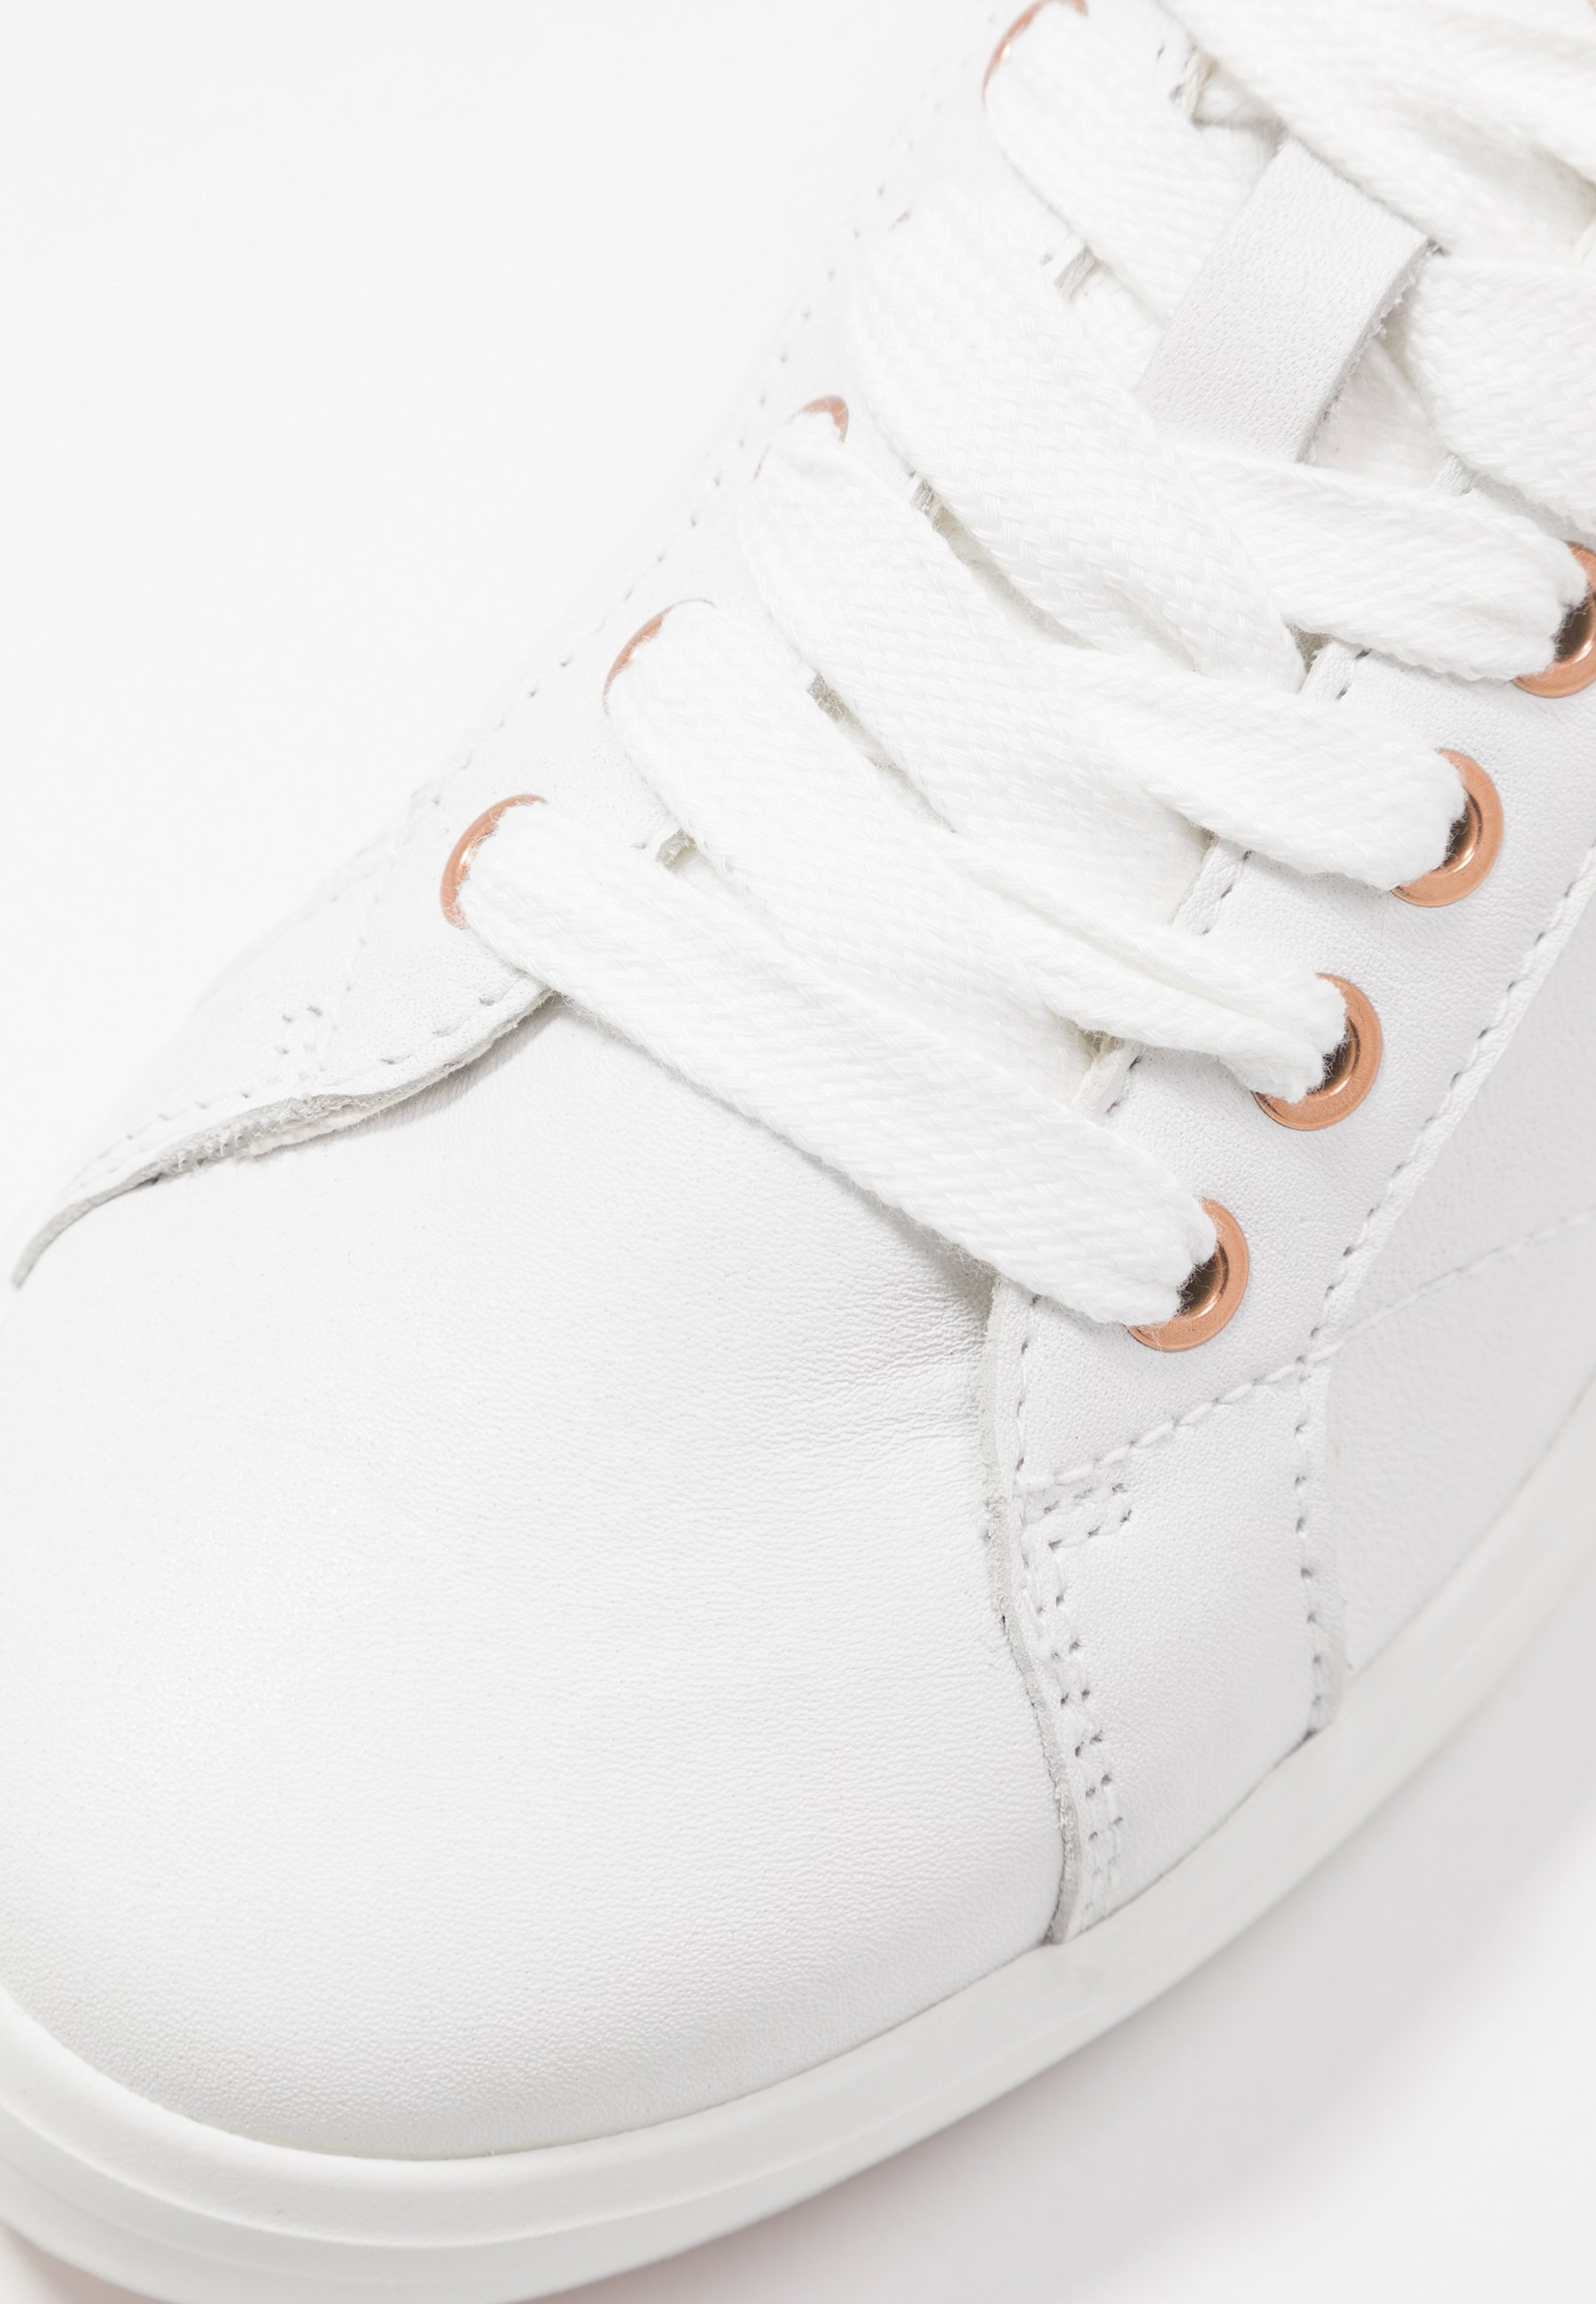 Gant Seaville - Sneakers Basse Bright White/rose Gold 1aM6B